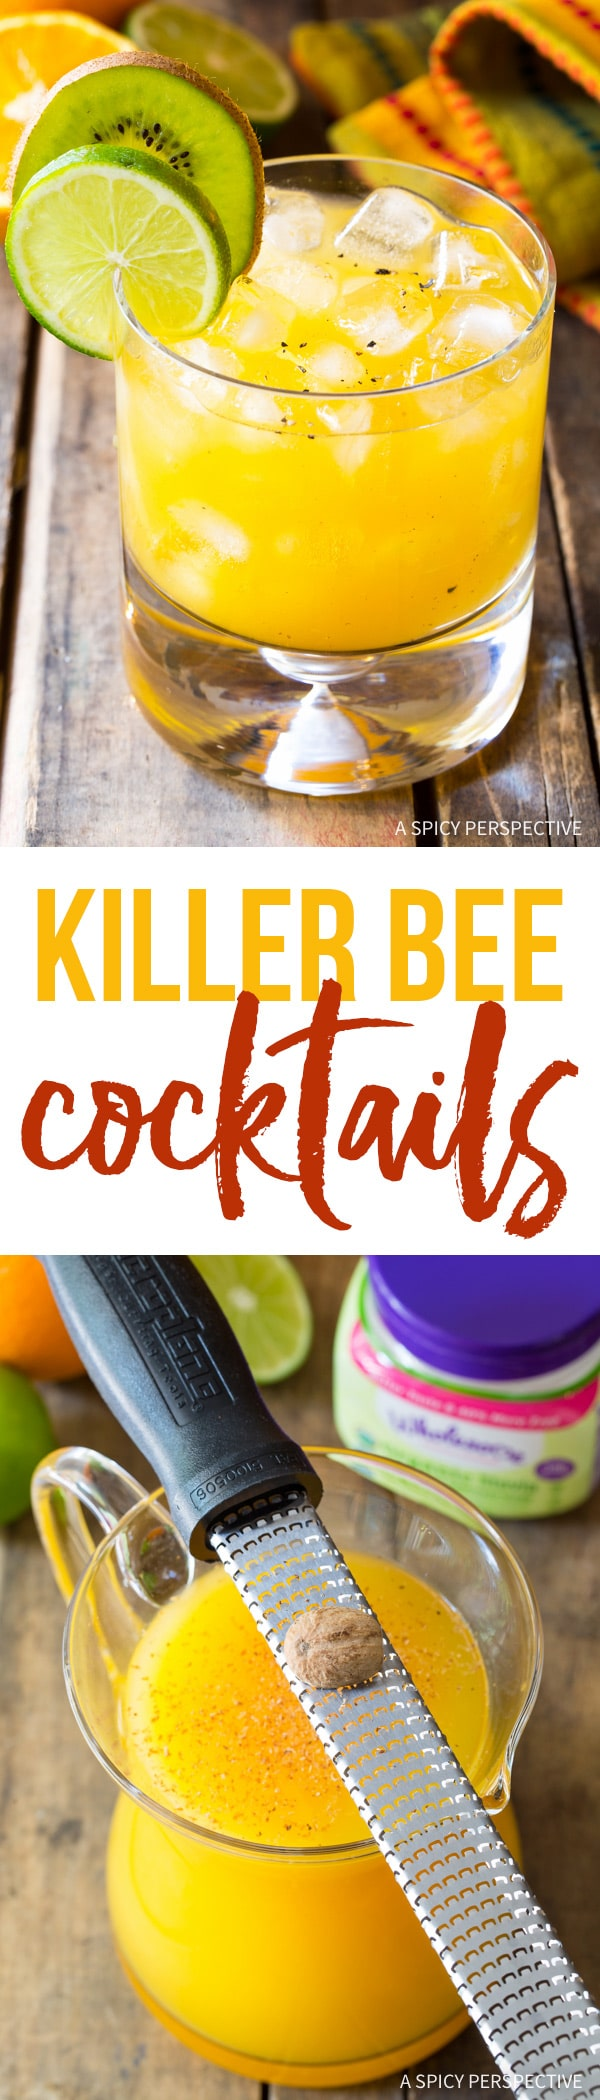 The Best Killer Bee Cocktails Recipe from Sunshine's Bar in Nevis